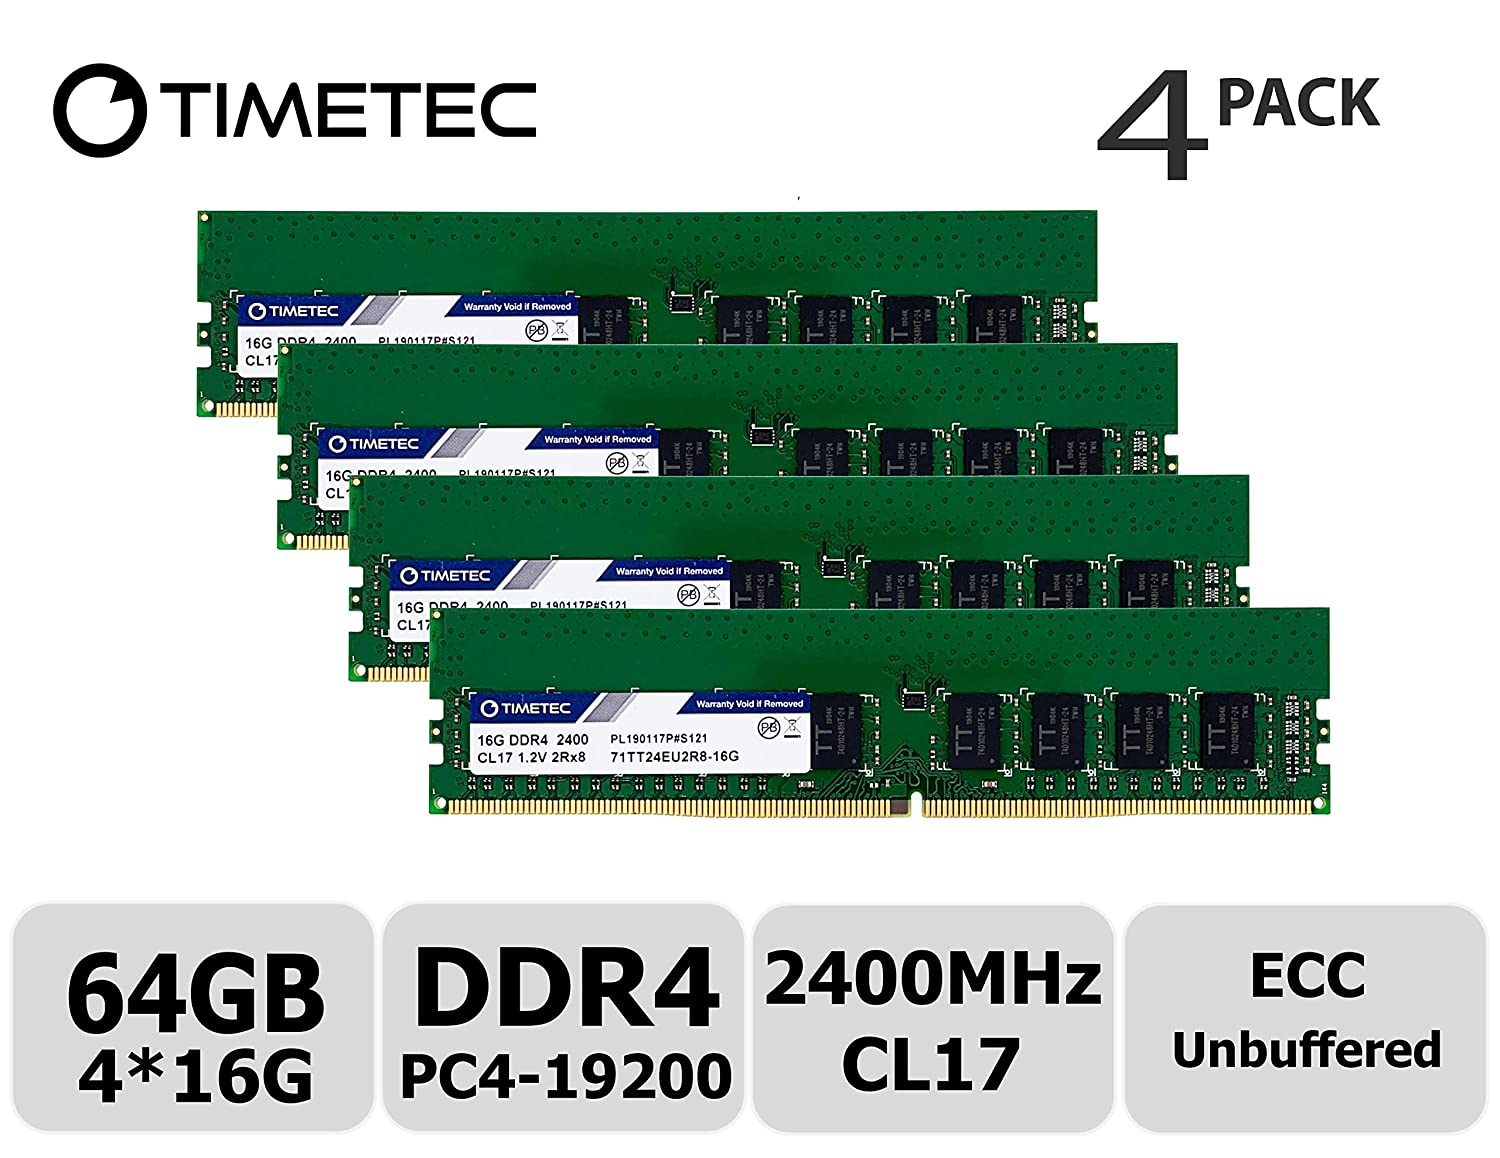 PARTS-QUICK BRAND 8GB Memory for Supermicro X11SSM Motherboard DDR4 2400MHz ECC UDIMM